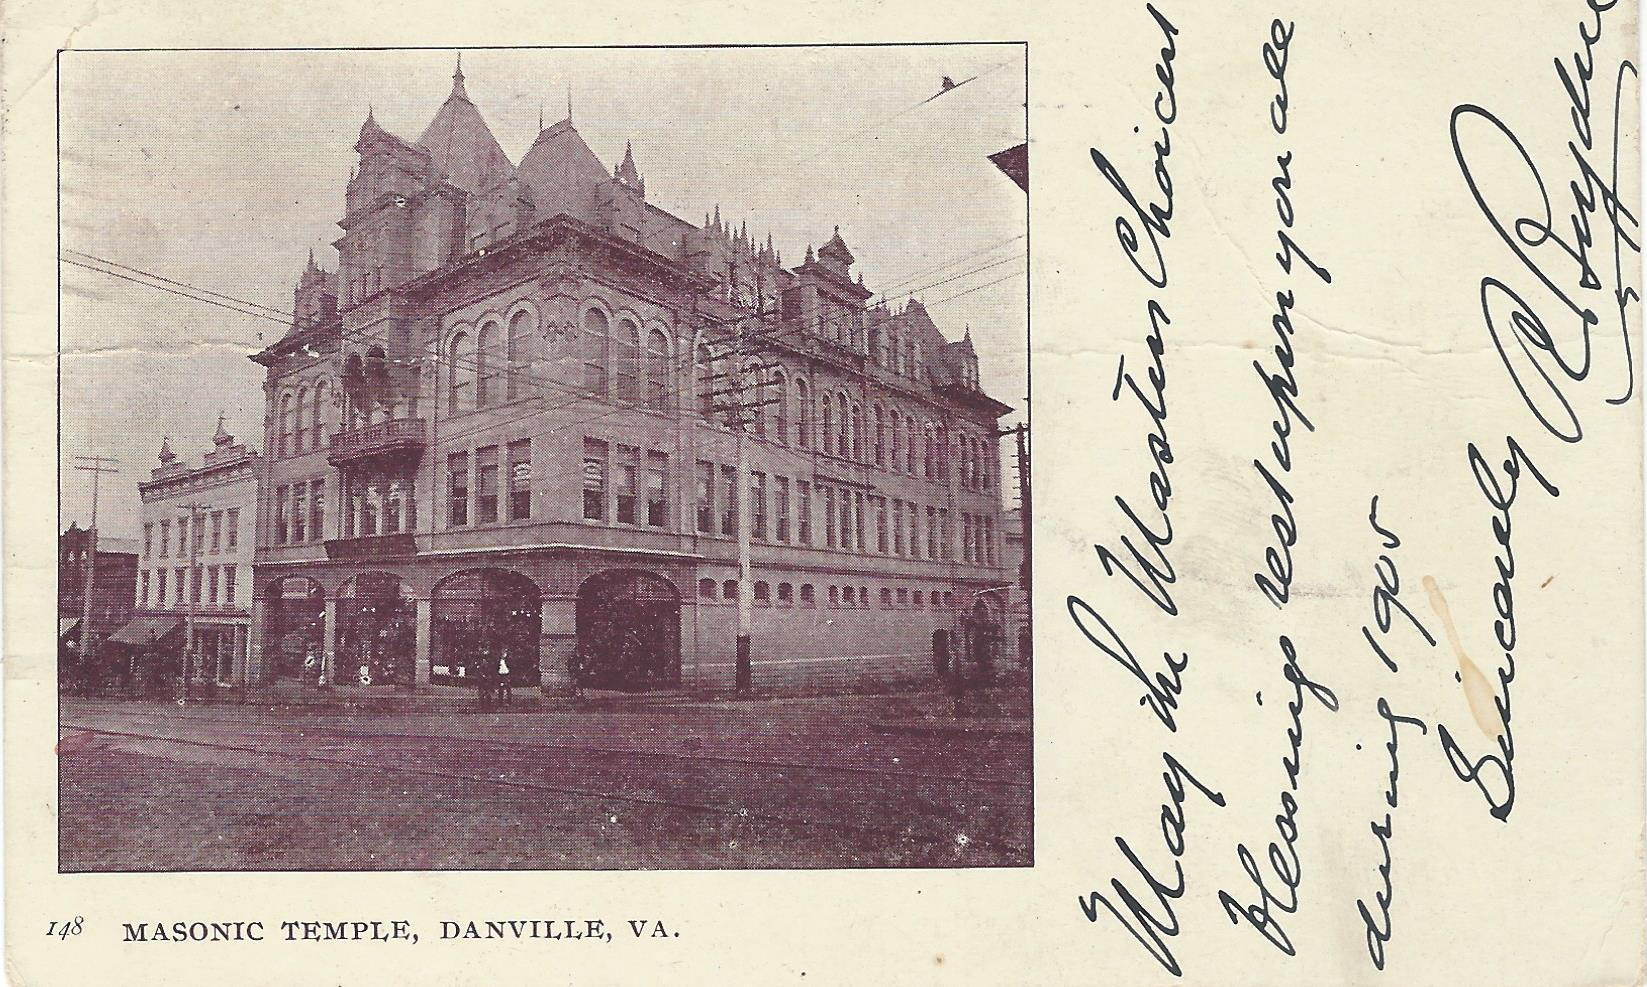 On January 3, 1920, this building along with most of the others on the block, was destroyed by a disastrous fire. This postcard showing the Masonic Temple is dated 1904. Notice the maze of power lines above and trolley tracks below (now buried).